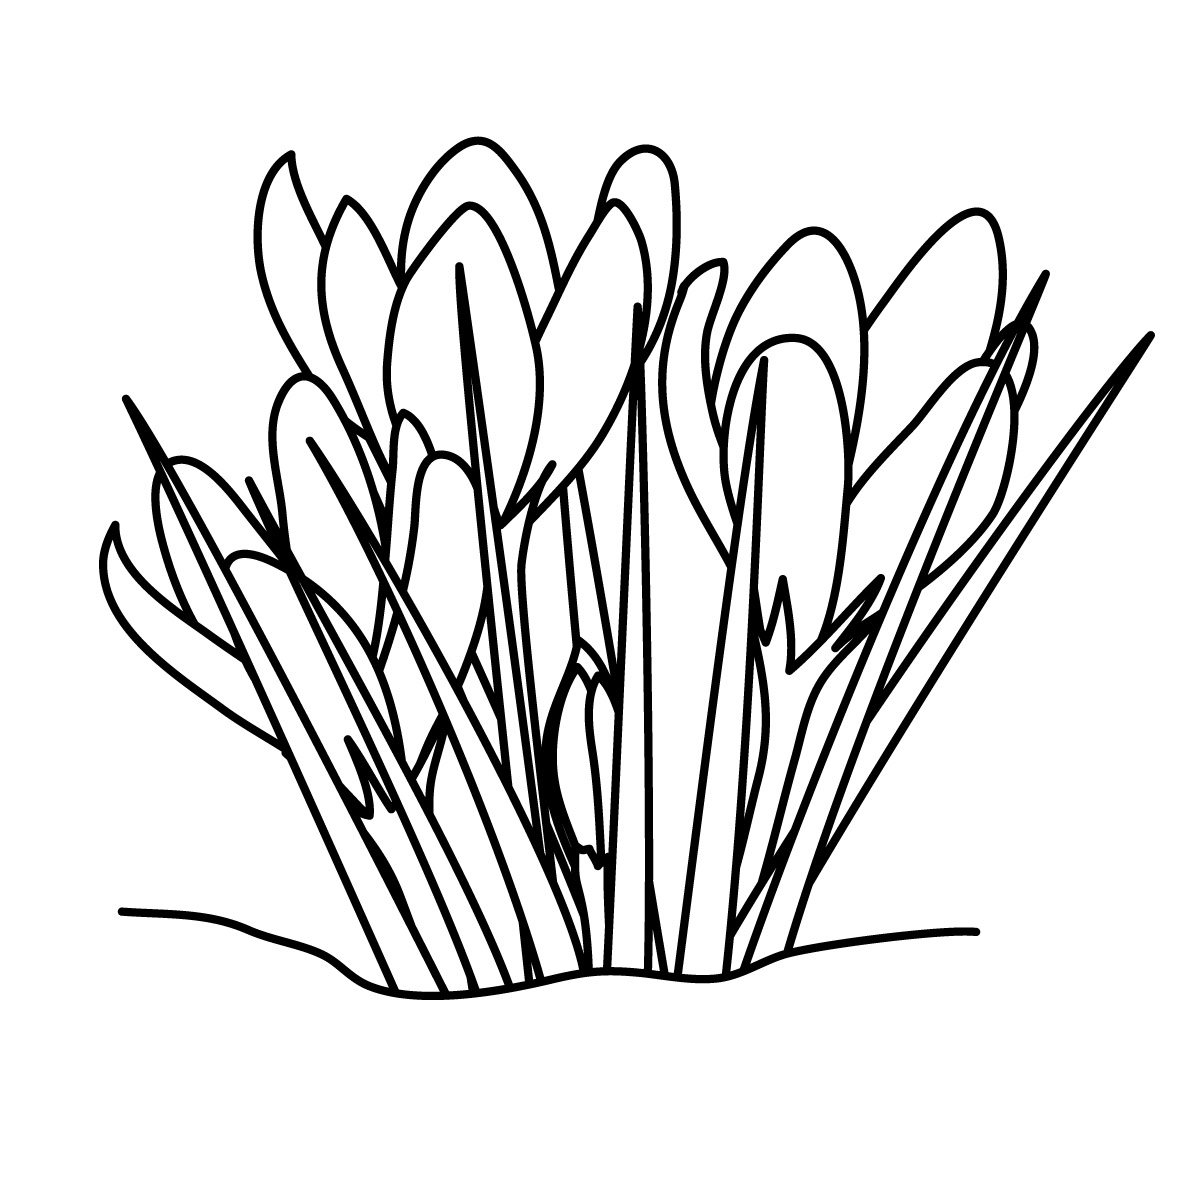 1200x1200 Grass Black And White Grass Clipart Line Drawing Pencil And